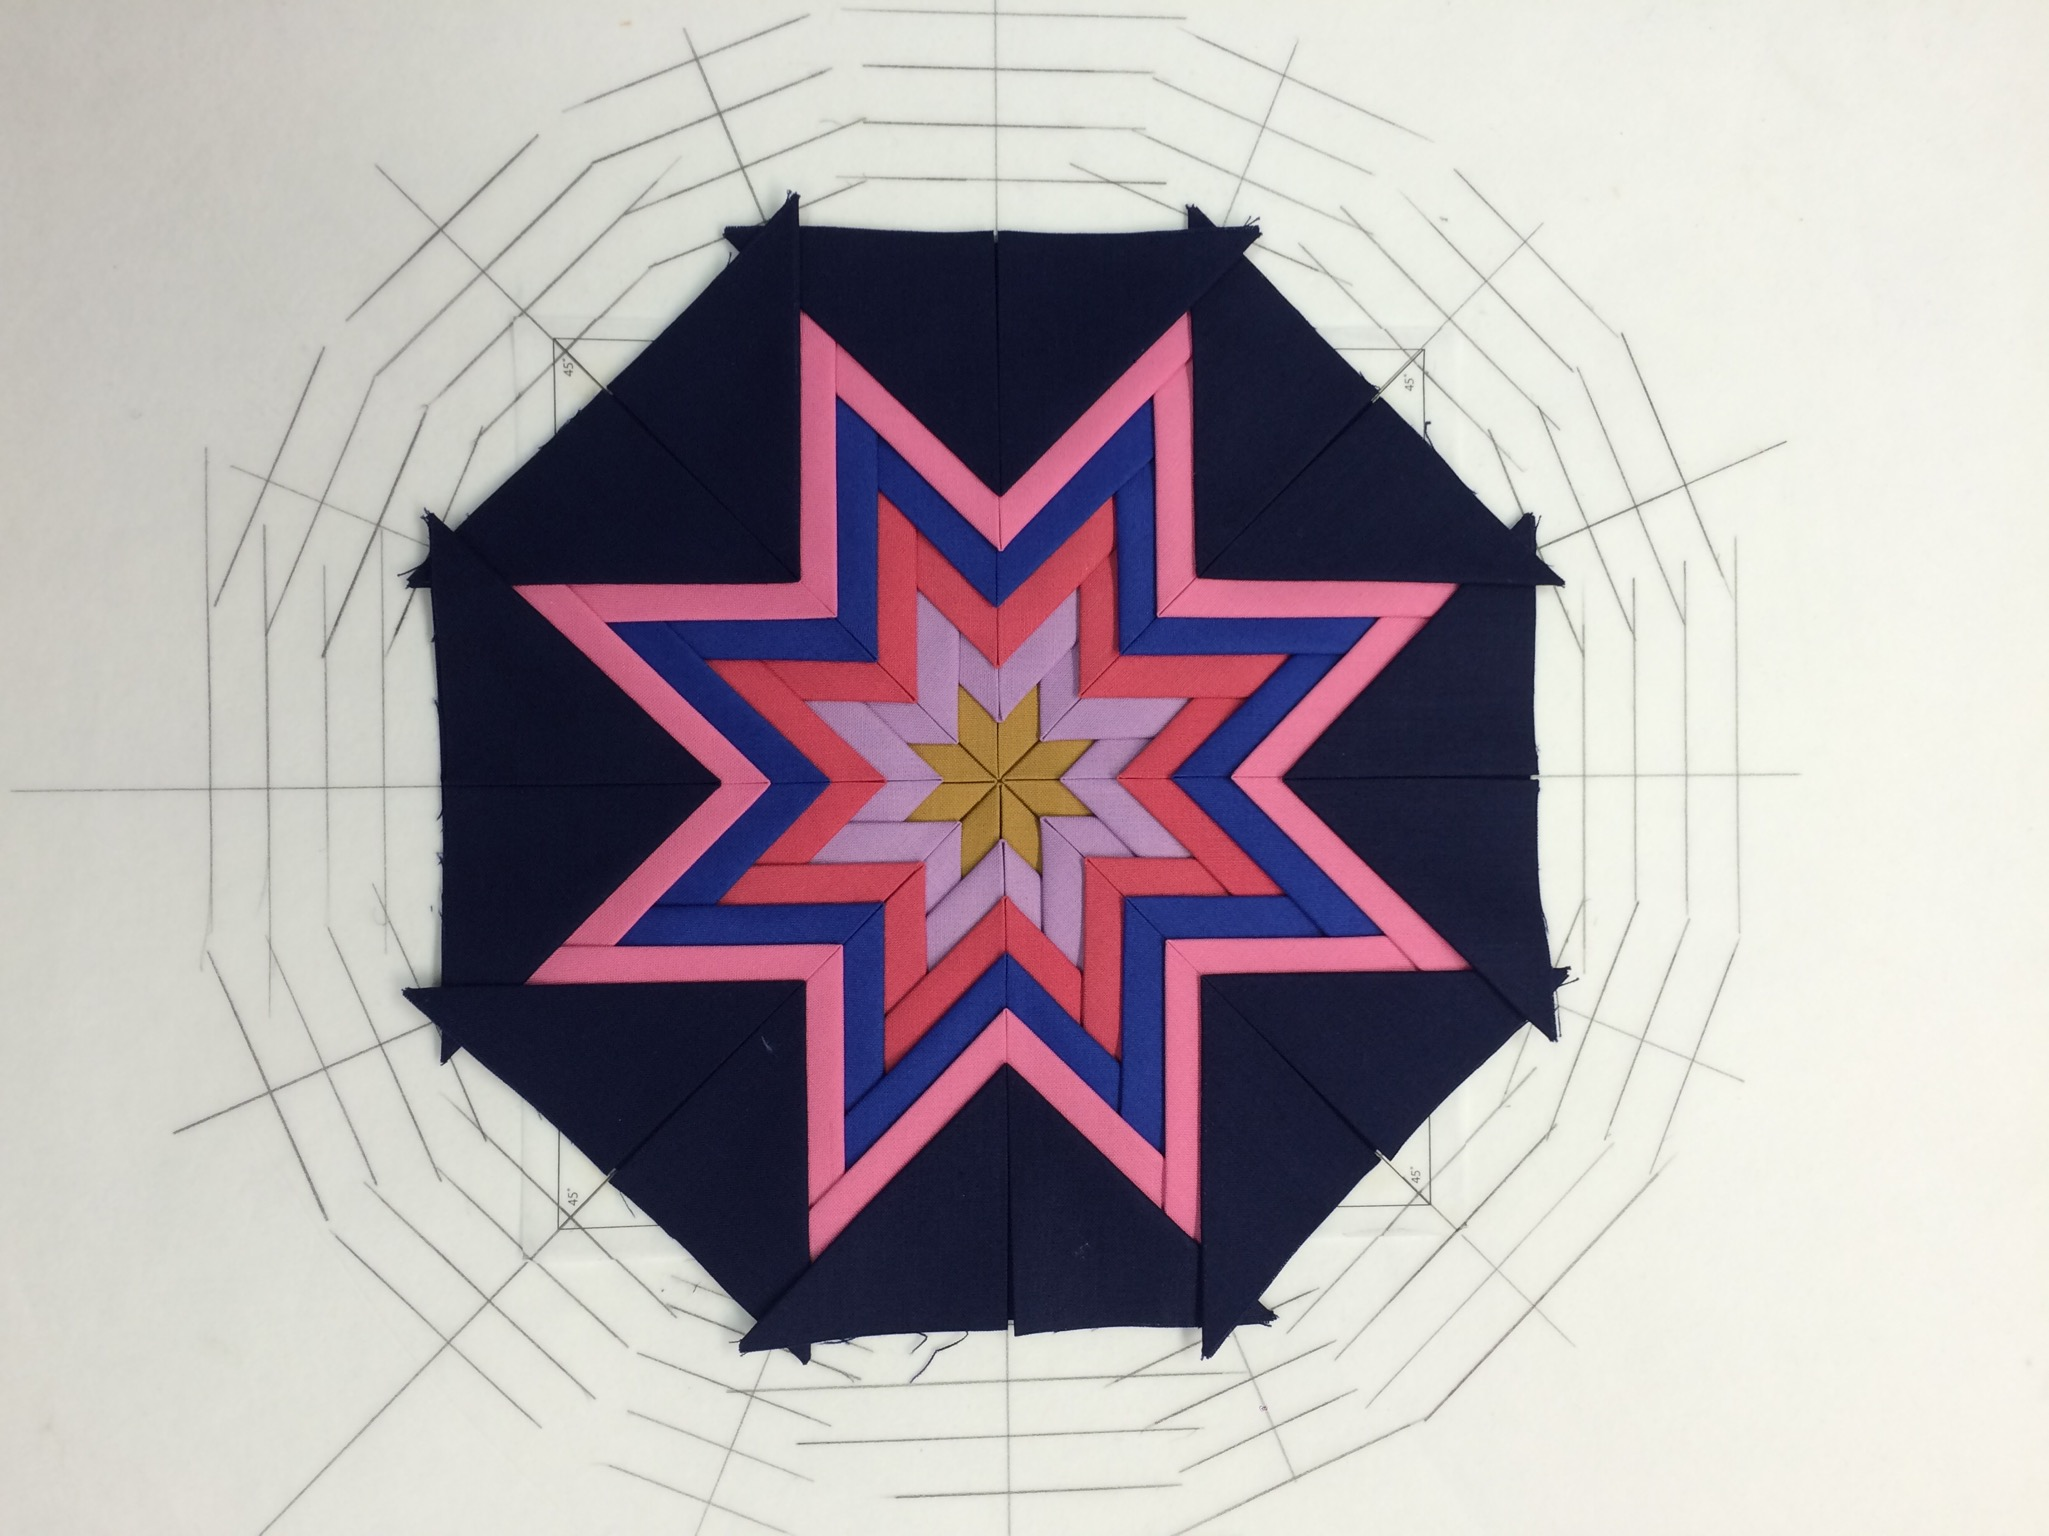 This is an 8 point star with prairie points every 45 degrees.